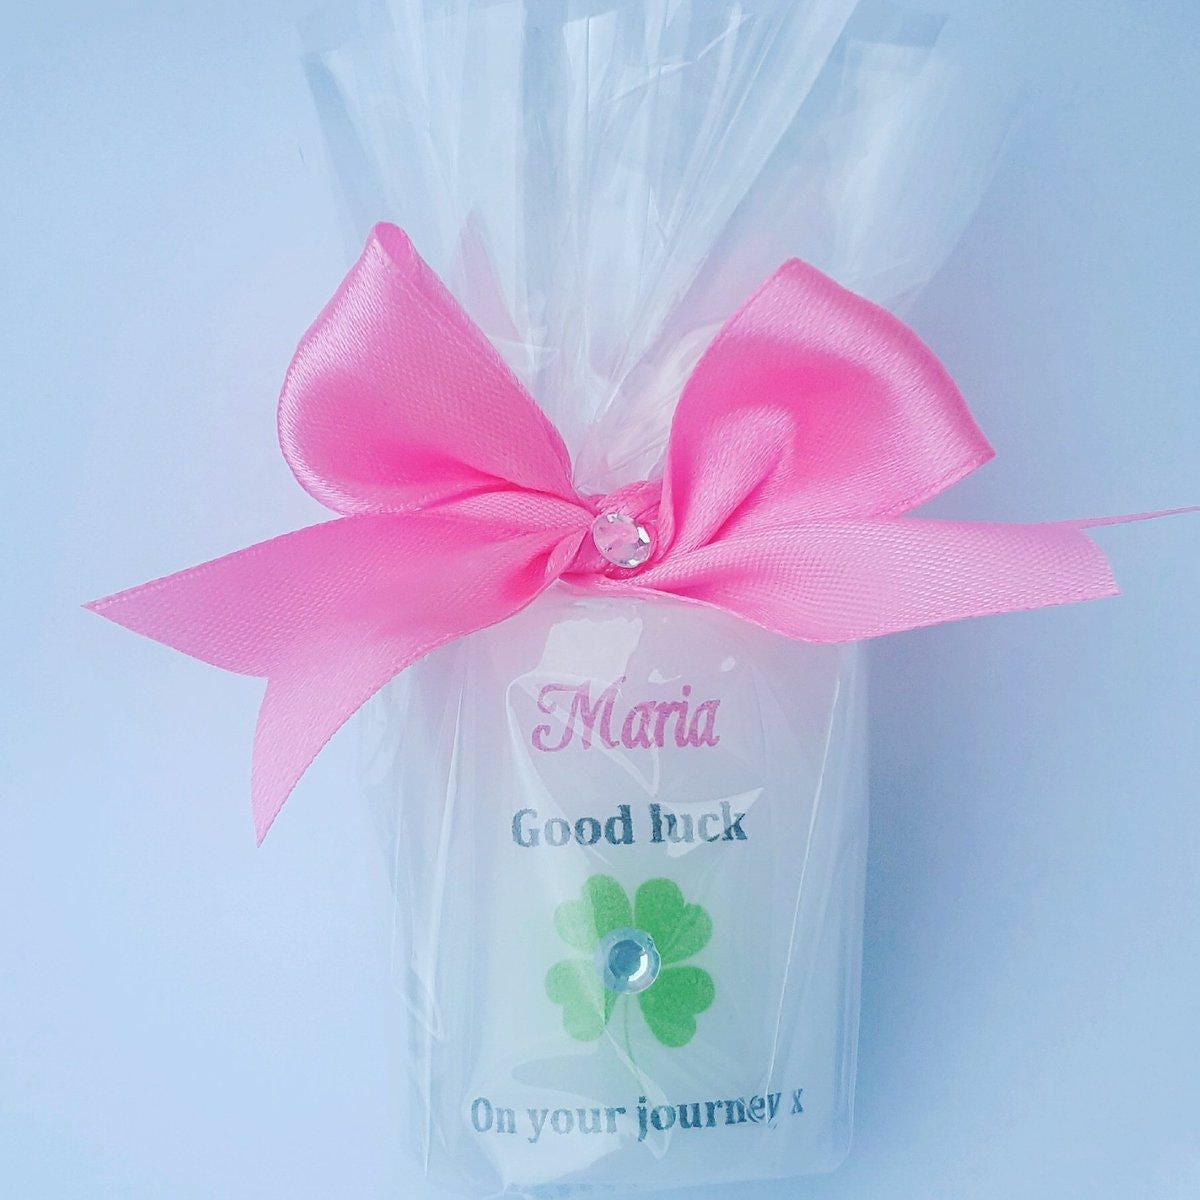 Personalised good luck candle with four leaf clover